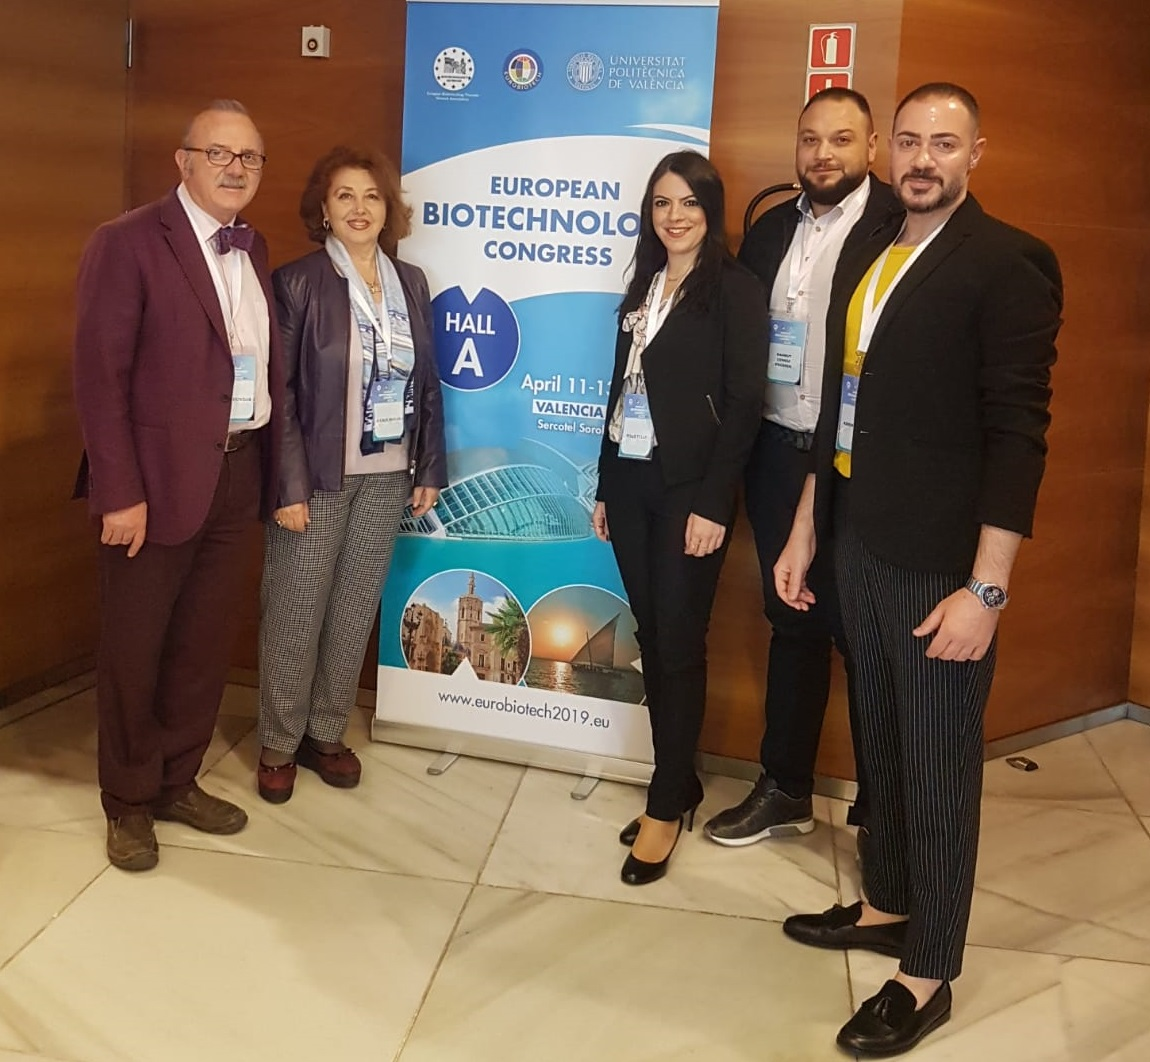 4 Oral Presentations and 6 Poster Presentations of the Near East University Researchers in the Biotechnology Congress held in Spain became the focus of attention